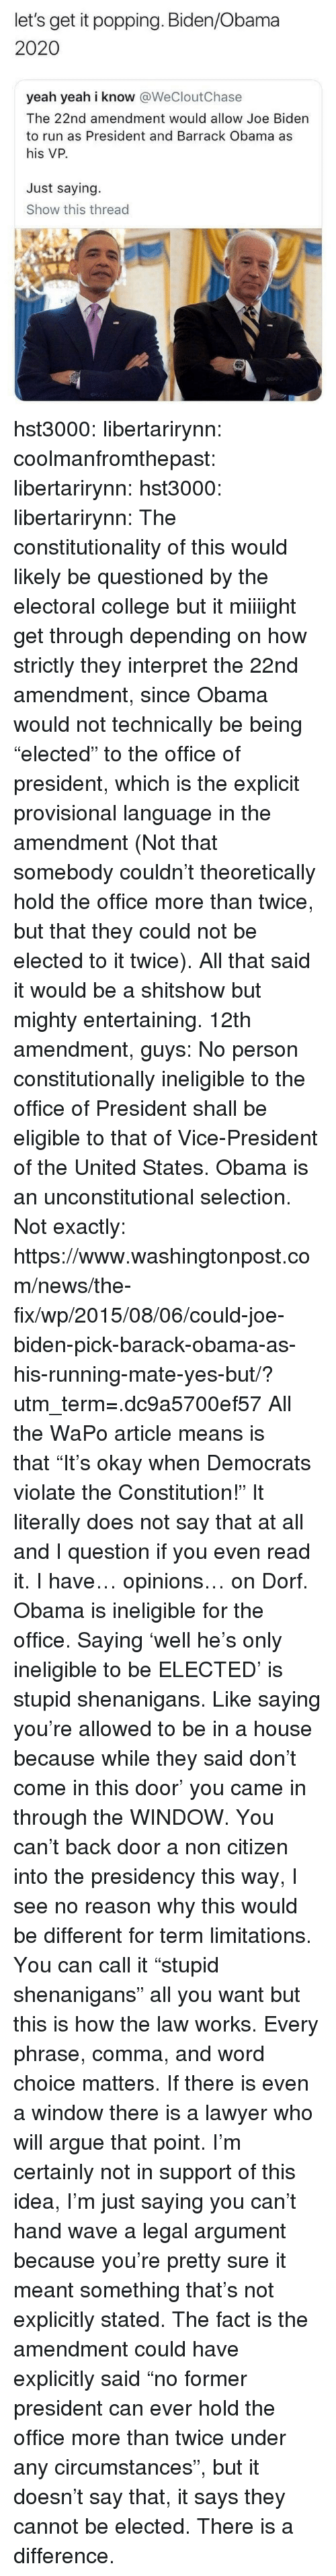 """Arguing, College, and Joe Biden: let's get it popping. Biden/Obama  2020  yeah yeah i know @WeCloutChase  The 22nd amendment would allow Joe Biden  to run as President and Barrack Obama as  his VP.  Just saying.  Show this thread  600 hst3000:  libertarirynn: coolmanfromthepast:  libertarirynn:  hst3000:  libertarirynn:  The constitutionality of this would likely be questioned by the electoral college but it miiiight get through depending on how strictly they interpret the 22nd amendment, since Obama would not technically be being """"elected"""" to the office of president, which is the explicit provisional language in the amendment (Not that somebody couldn't theoretically hold the office more than twice, but that they could not be elected to it twice).  All that said it would be a shitshow but mighty entertaining.  12th amendment, guys:  No person constitutionally ineligible to the office of President shall  be eligible to that of Vice-President of the United States.  Obama is an unconstitutional selection.   Not exactly: https://www.washingtonpost.com/news/the-fix/wp/2015/08/06/could-joe-biden-pick-barack-obama-as-his-running-mate-yes-but/?utm_term=.dc9a5700ef57  All the WaPo article means is that""""It's okay when Democrats violate the Constitution!""""  It literally does not say that at all and I question if you even read it.  I have… opinions… on Dorf. Obama is ineligible for the office. Saying 'well he's only ineligible to be ELECTED' is stupid shenanigans. Like saying you're allowed to be in a house because while they said don't come in this door' you came in through the WINDOW. You can't back door a non citizen into the presidency this way, I see no reason why this would be different for term limitations.  You can call it """"stupid shenanigans"""" all you want but this is how the law works. Every phrase, comma, and word choice matters. If there is even a window there is a lawyer who will argue that point. I'm certainly not in support of this idea, I'm just saying you can't """